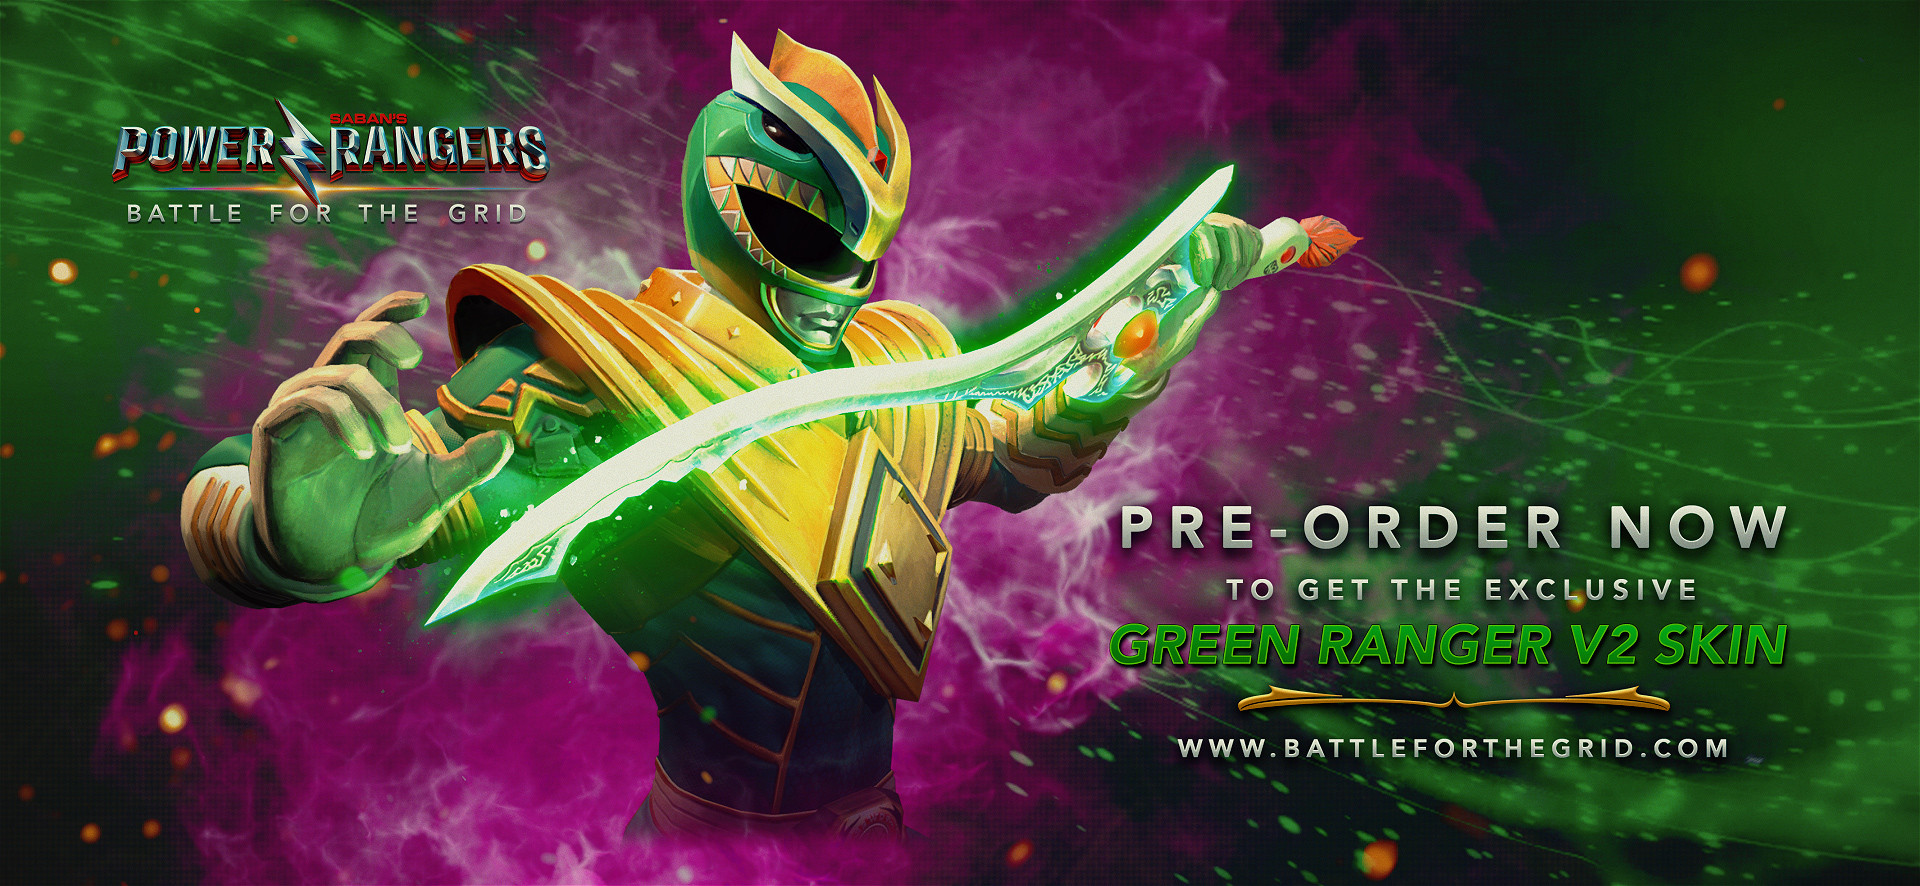 Power Rangers: Battle for the Grid pre-order